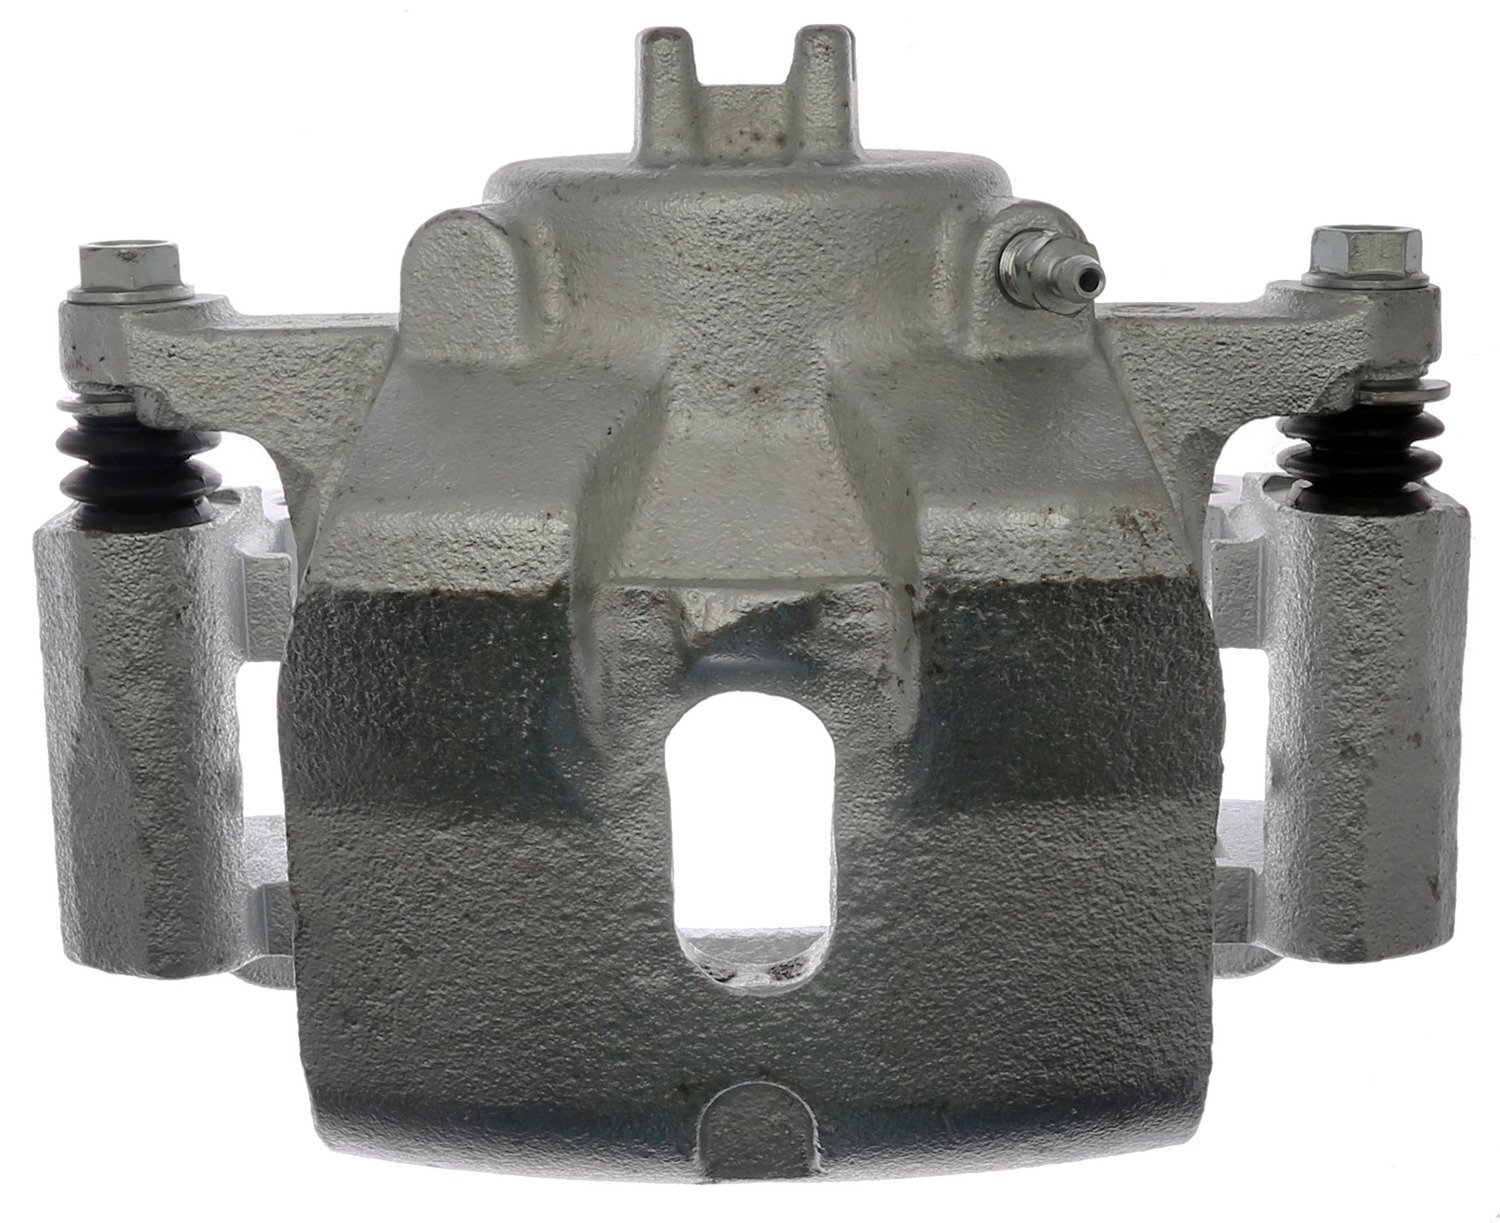 Remanufactured Friction Ready Coated ACDelco 18FR2183C Professional Front Driver Side Disc Brake Caliper Assembly without Pads